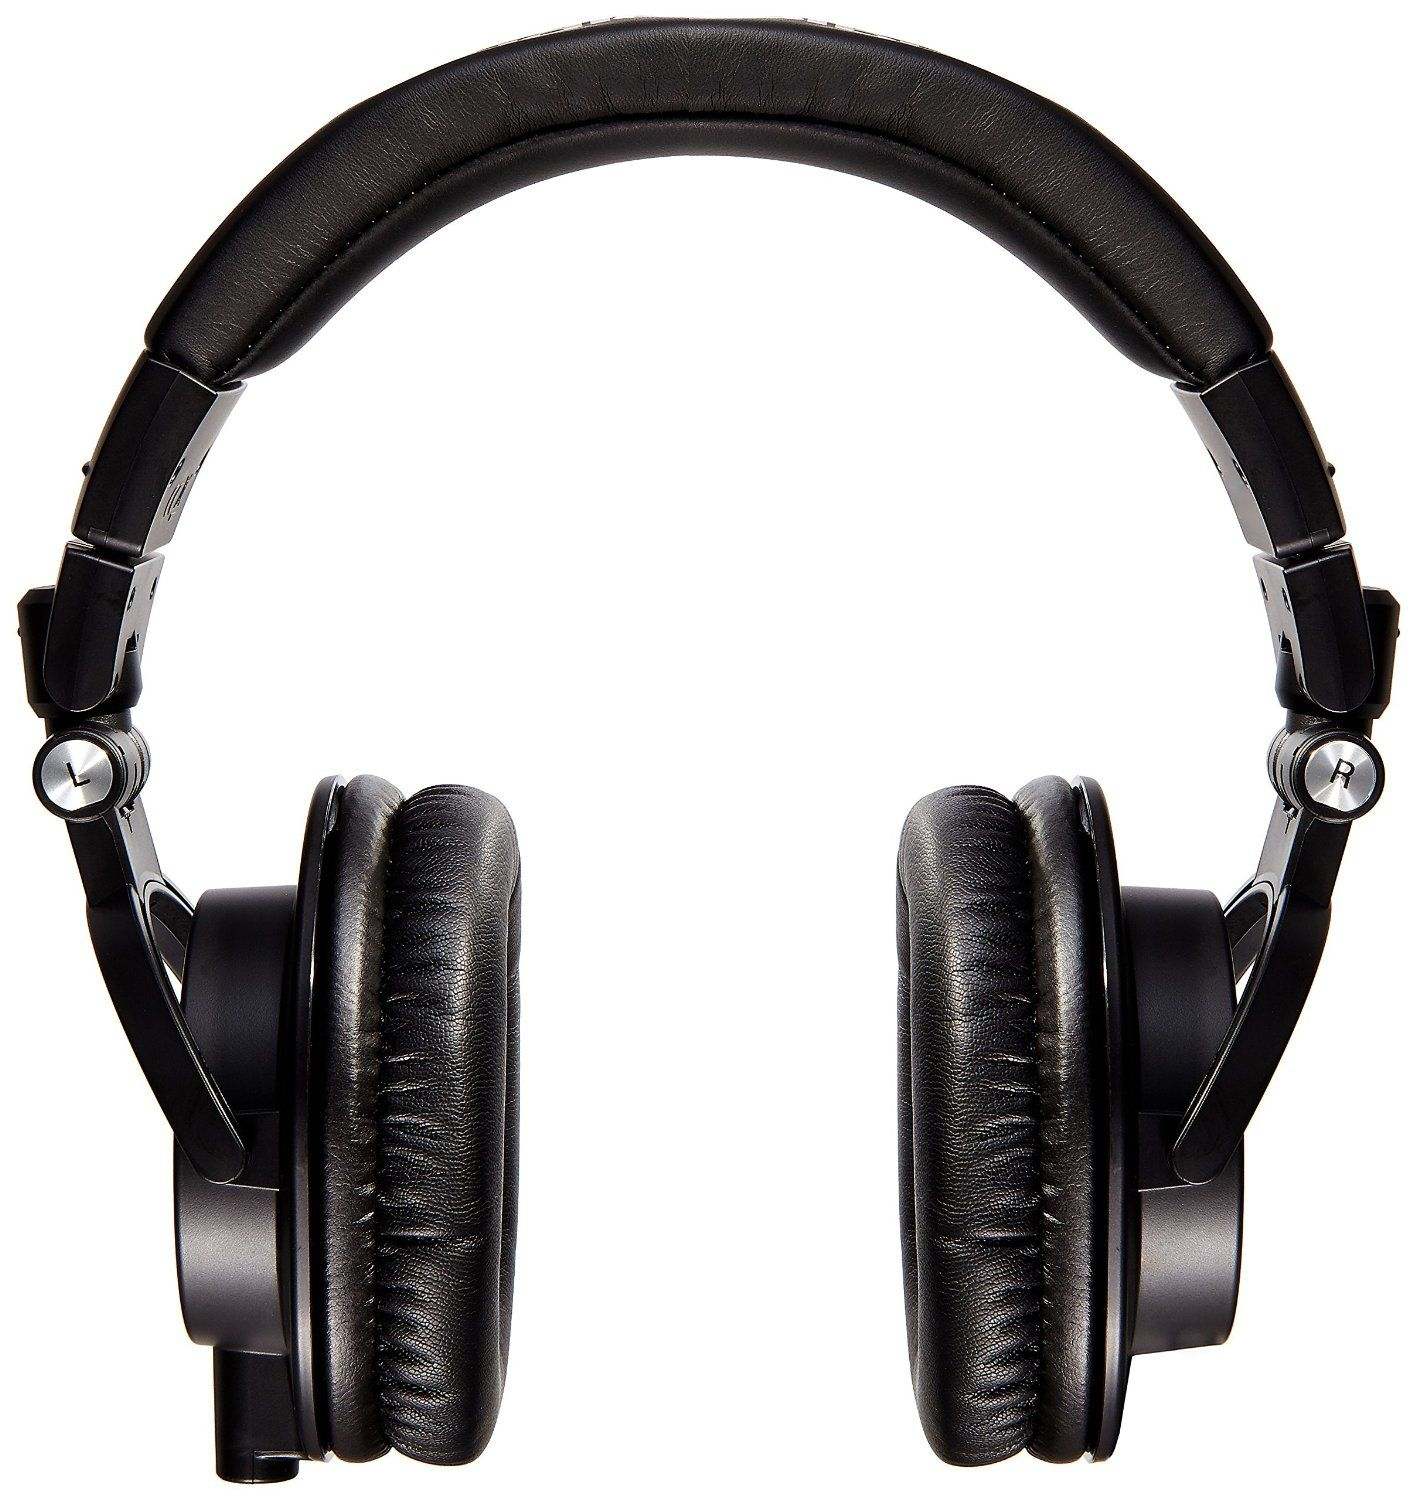 a26a0e2fa1d Pin by Headphones on Audio Technica Headphones in 2018 | Pinterest ...